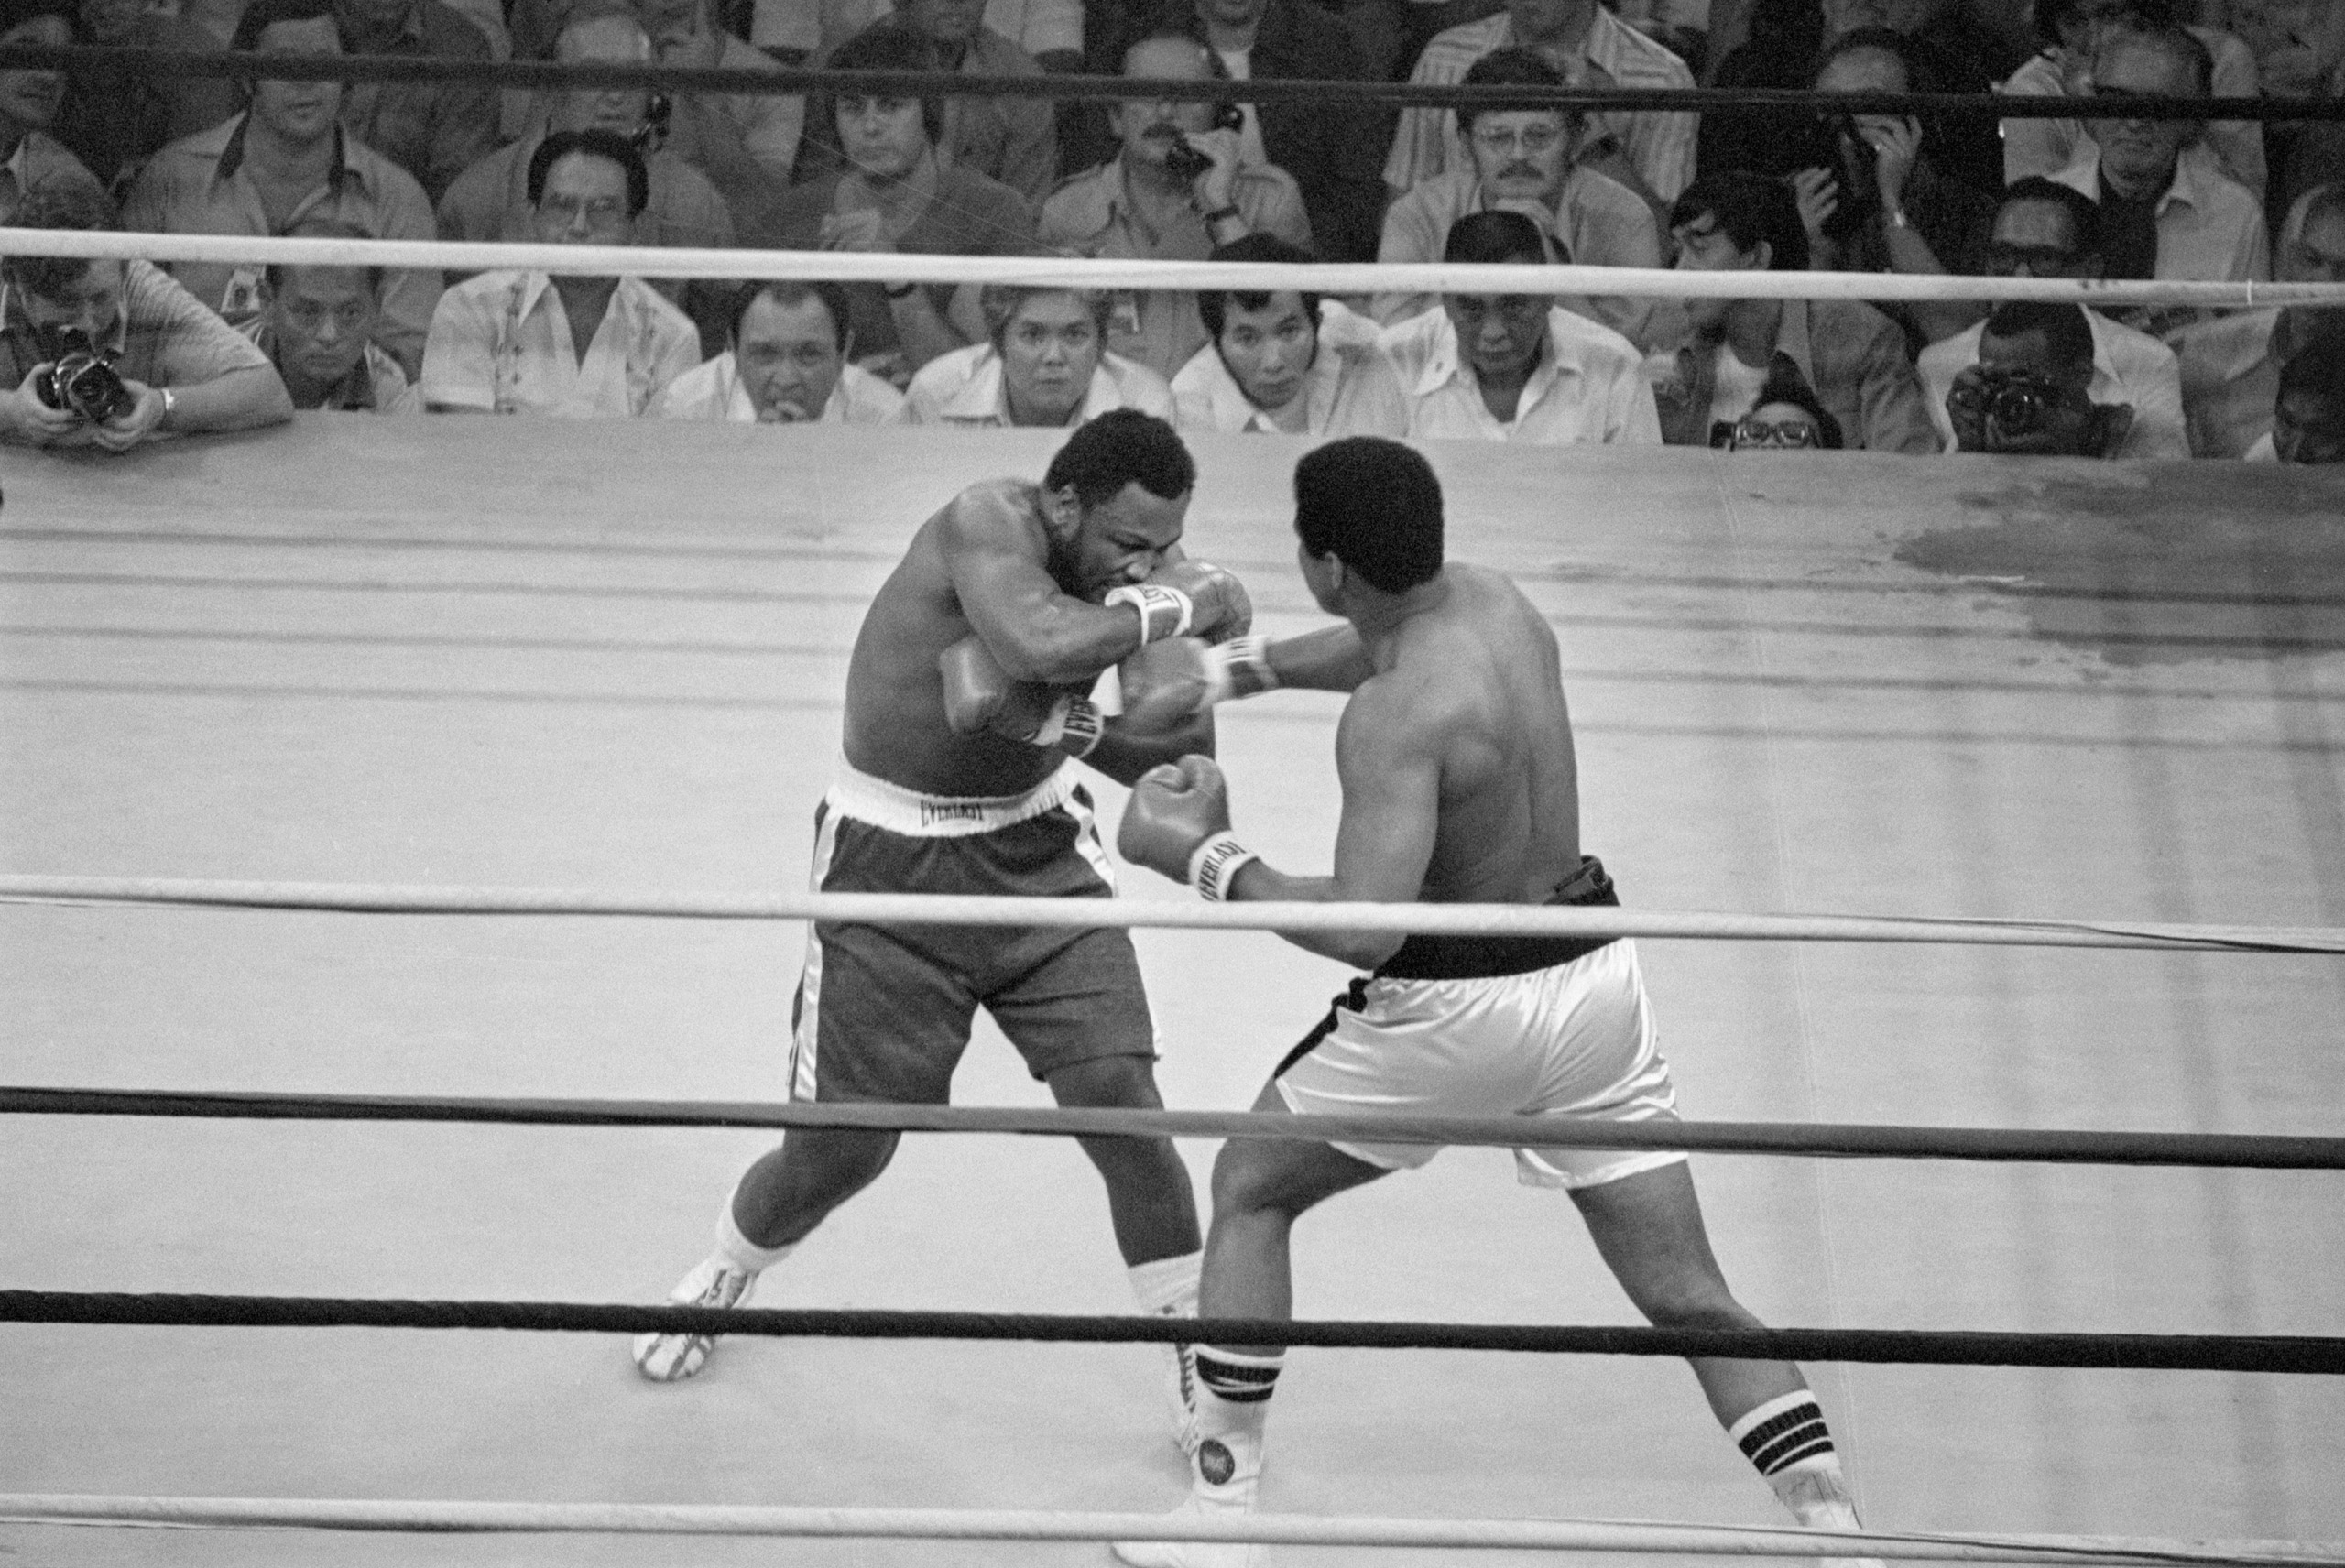 Oct. 1, 1975, Manila, —Heavyweight champion Muhammad Ali punches Joe Frazier during their title bout in Manila in 1975.